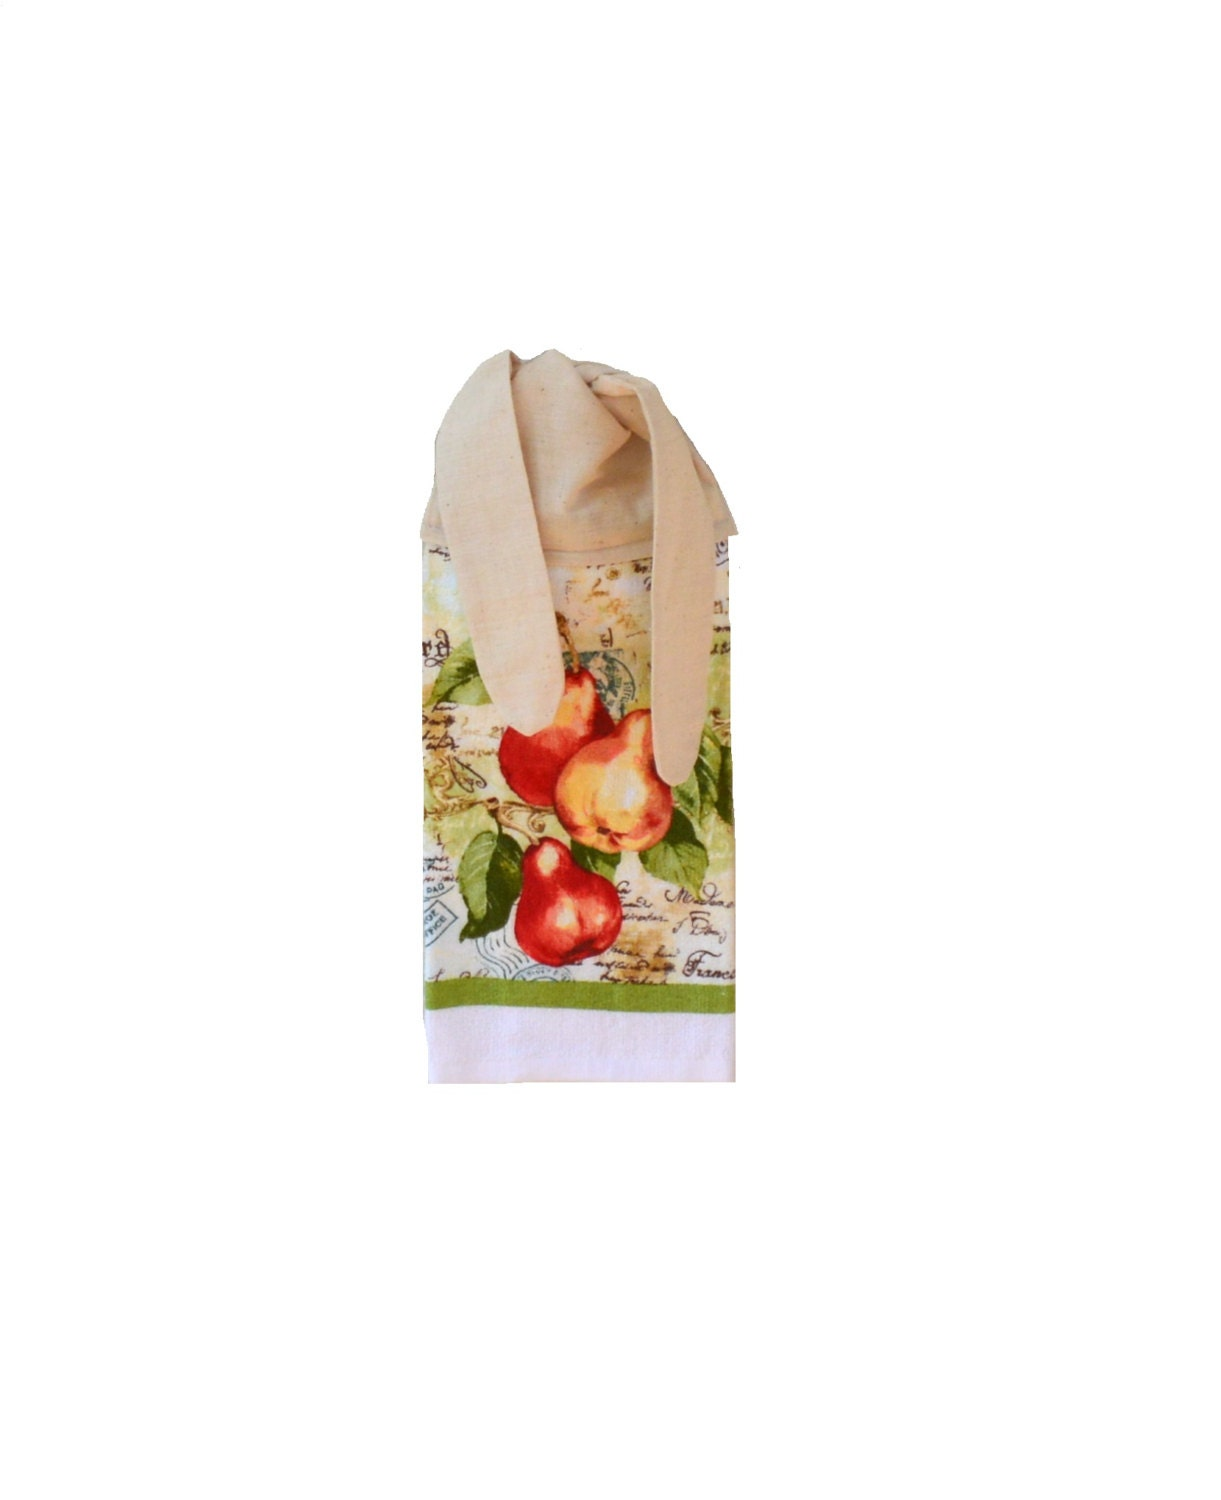 Fruit dish towel kitchen hand towel fruit decor by - Kitchen curtains with fruit design ...